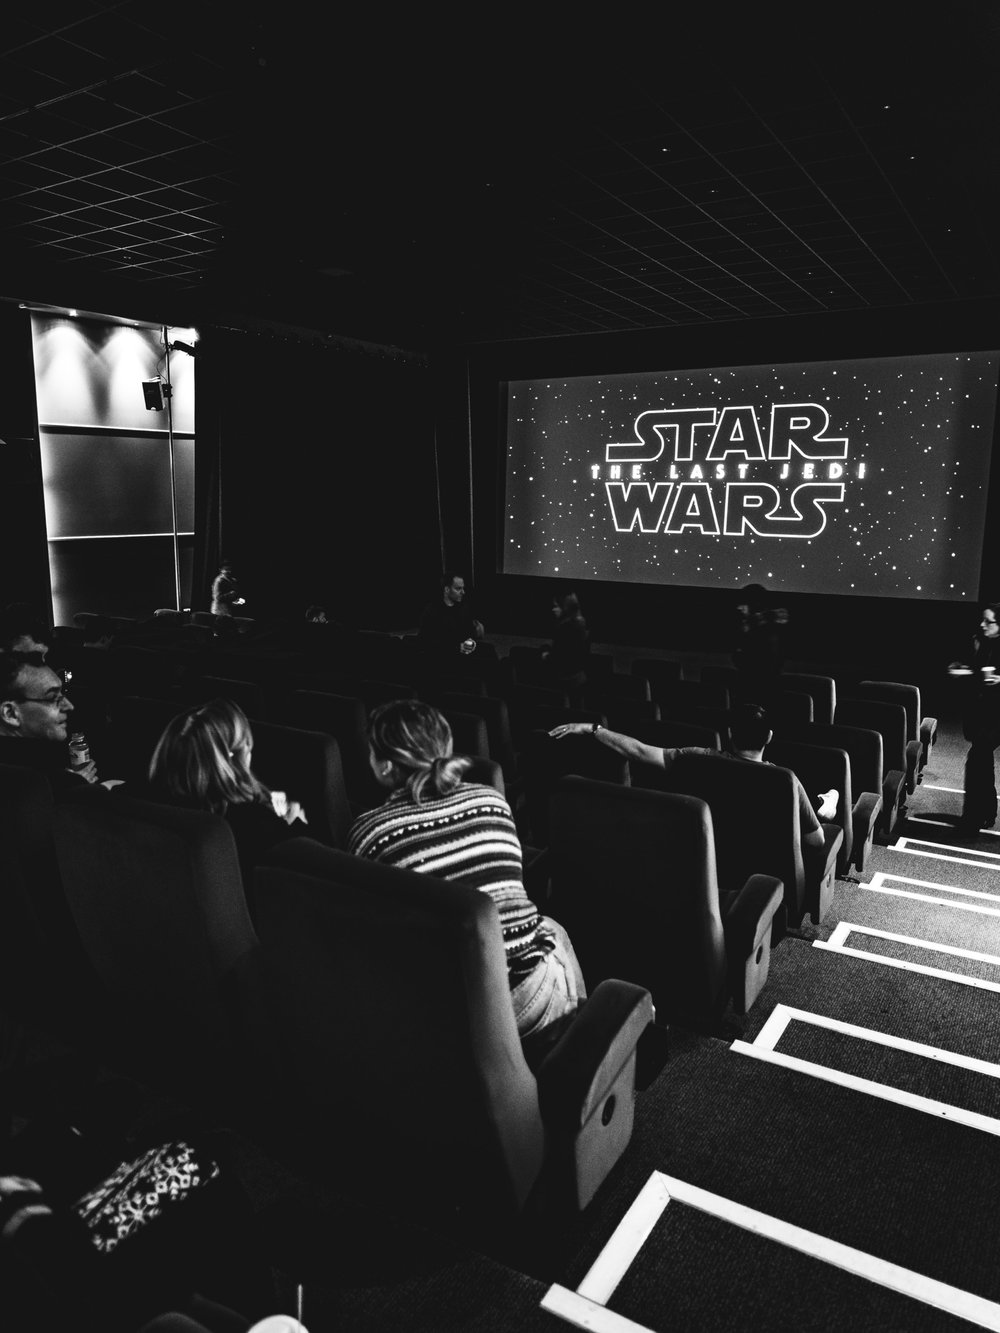 Went to see Star Wars 'The Last Jedi' at Pinewood Studios!